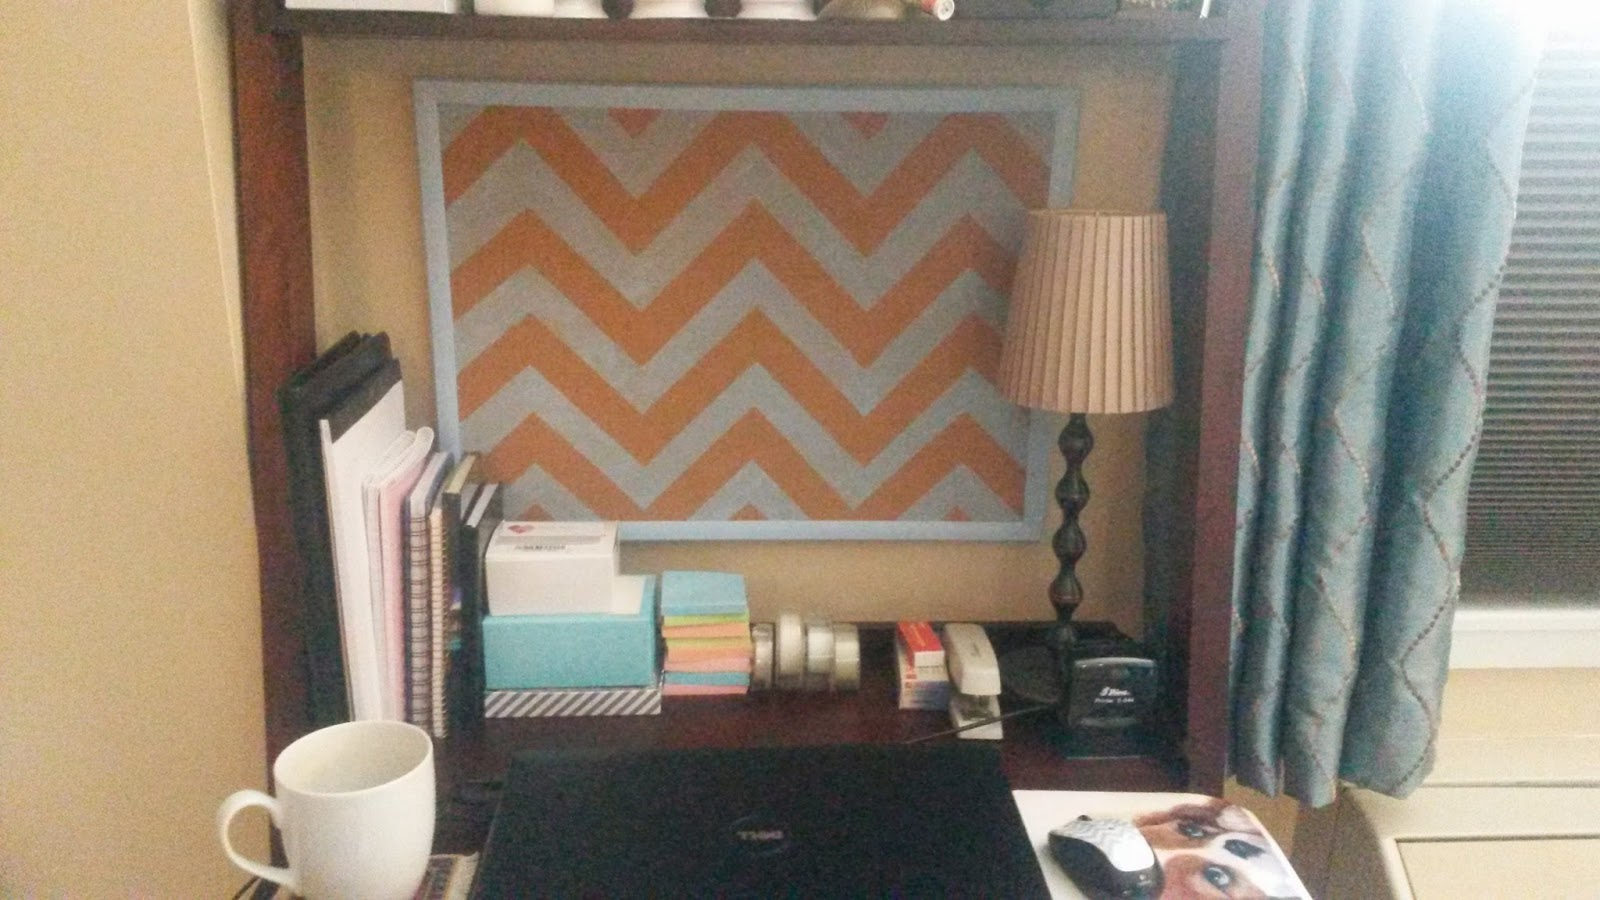 Delightful Painted Chevron Cork Board in Small Office Space